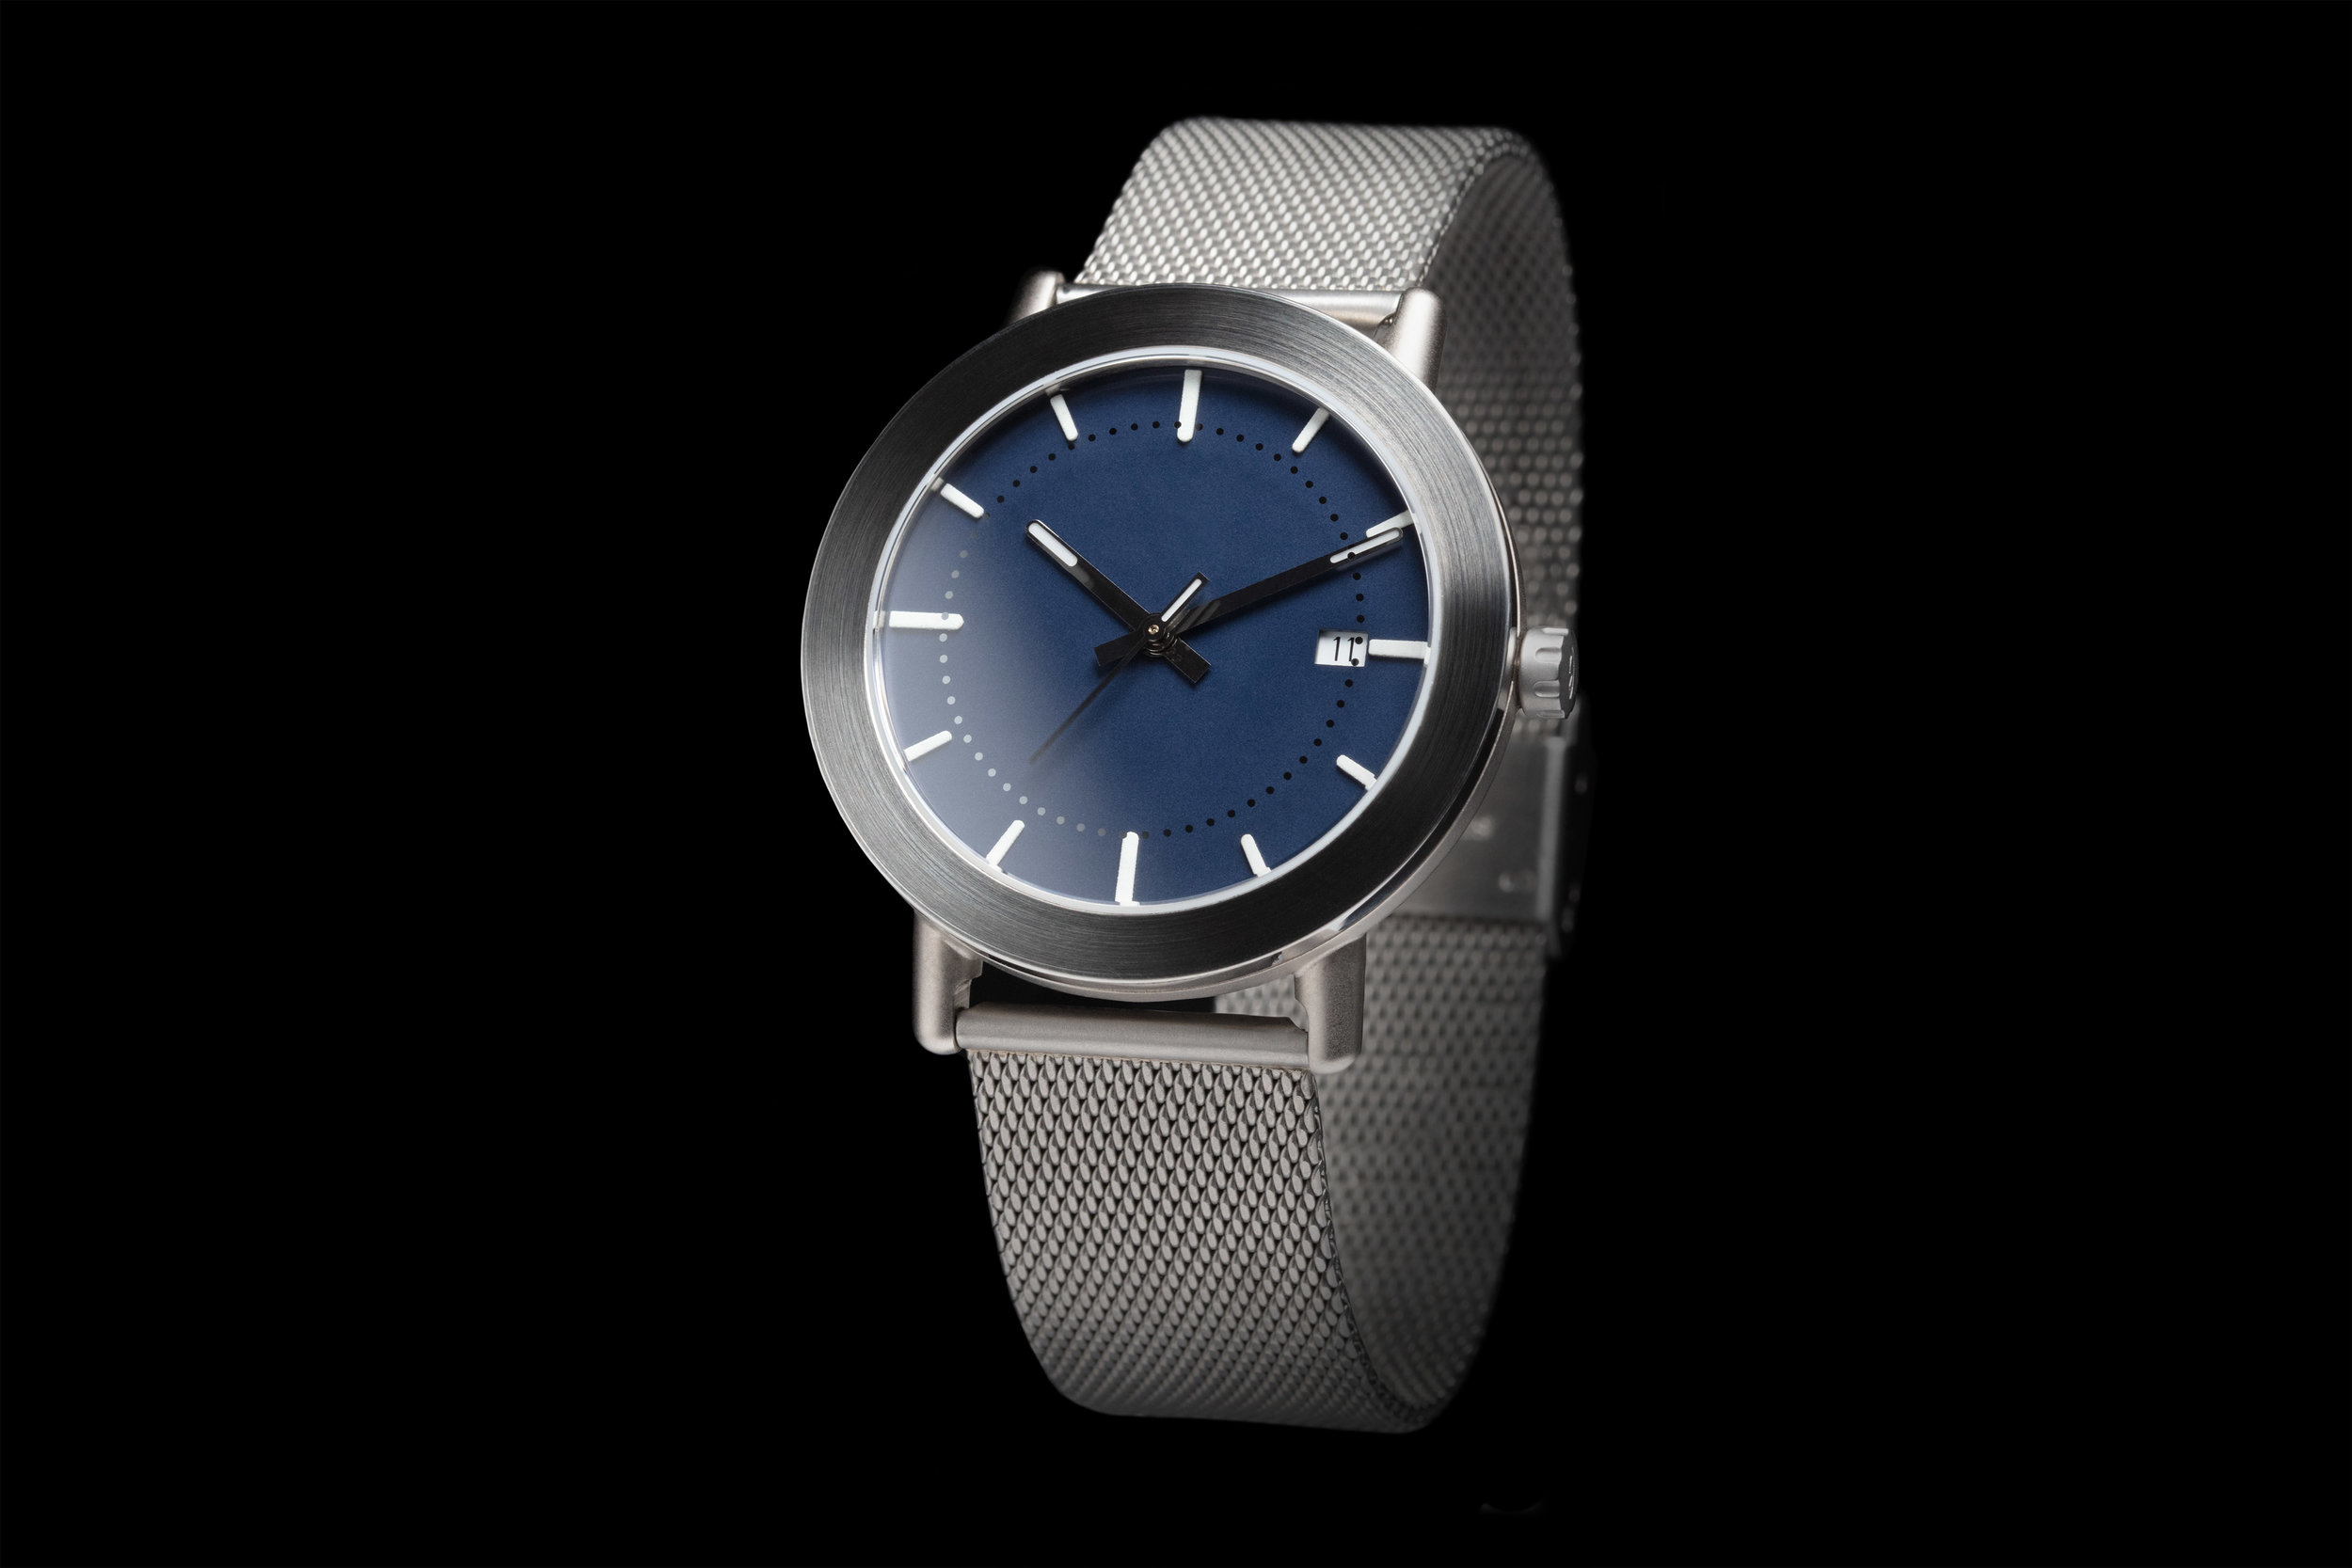 Eleven - A stylish automatic watch available in light or darkgrey, seven different dails, Milanese bands as well as high quality organic leather.